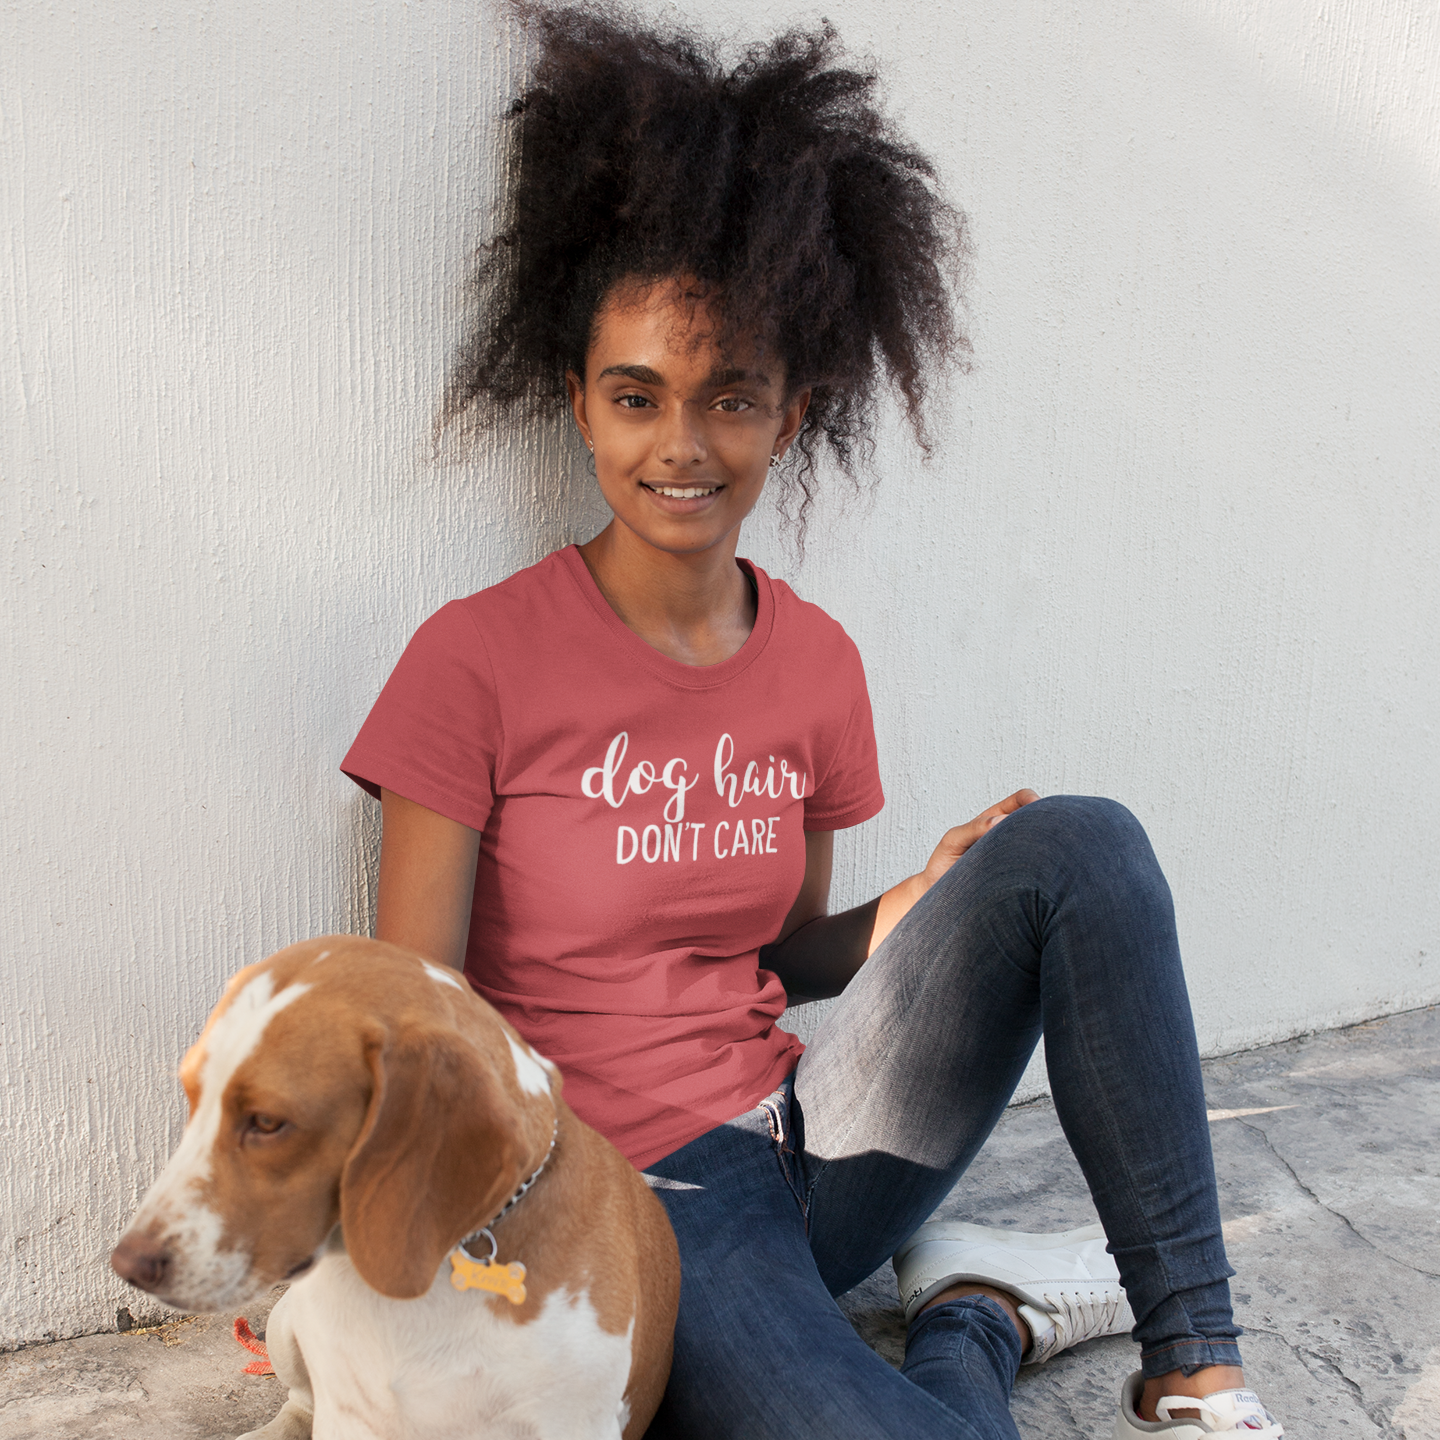 'Dog hair, don't care' adult shirt